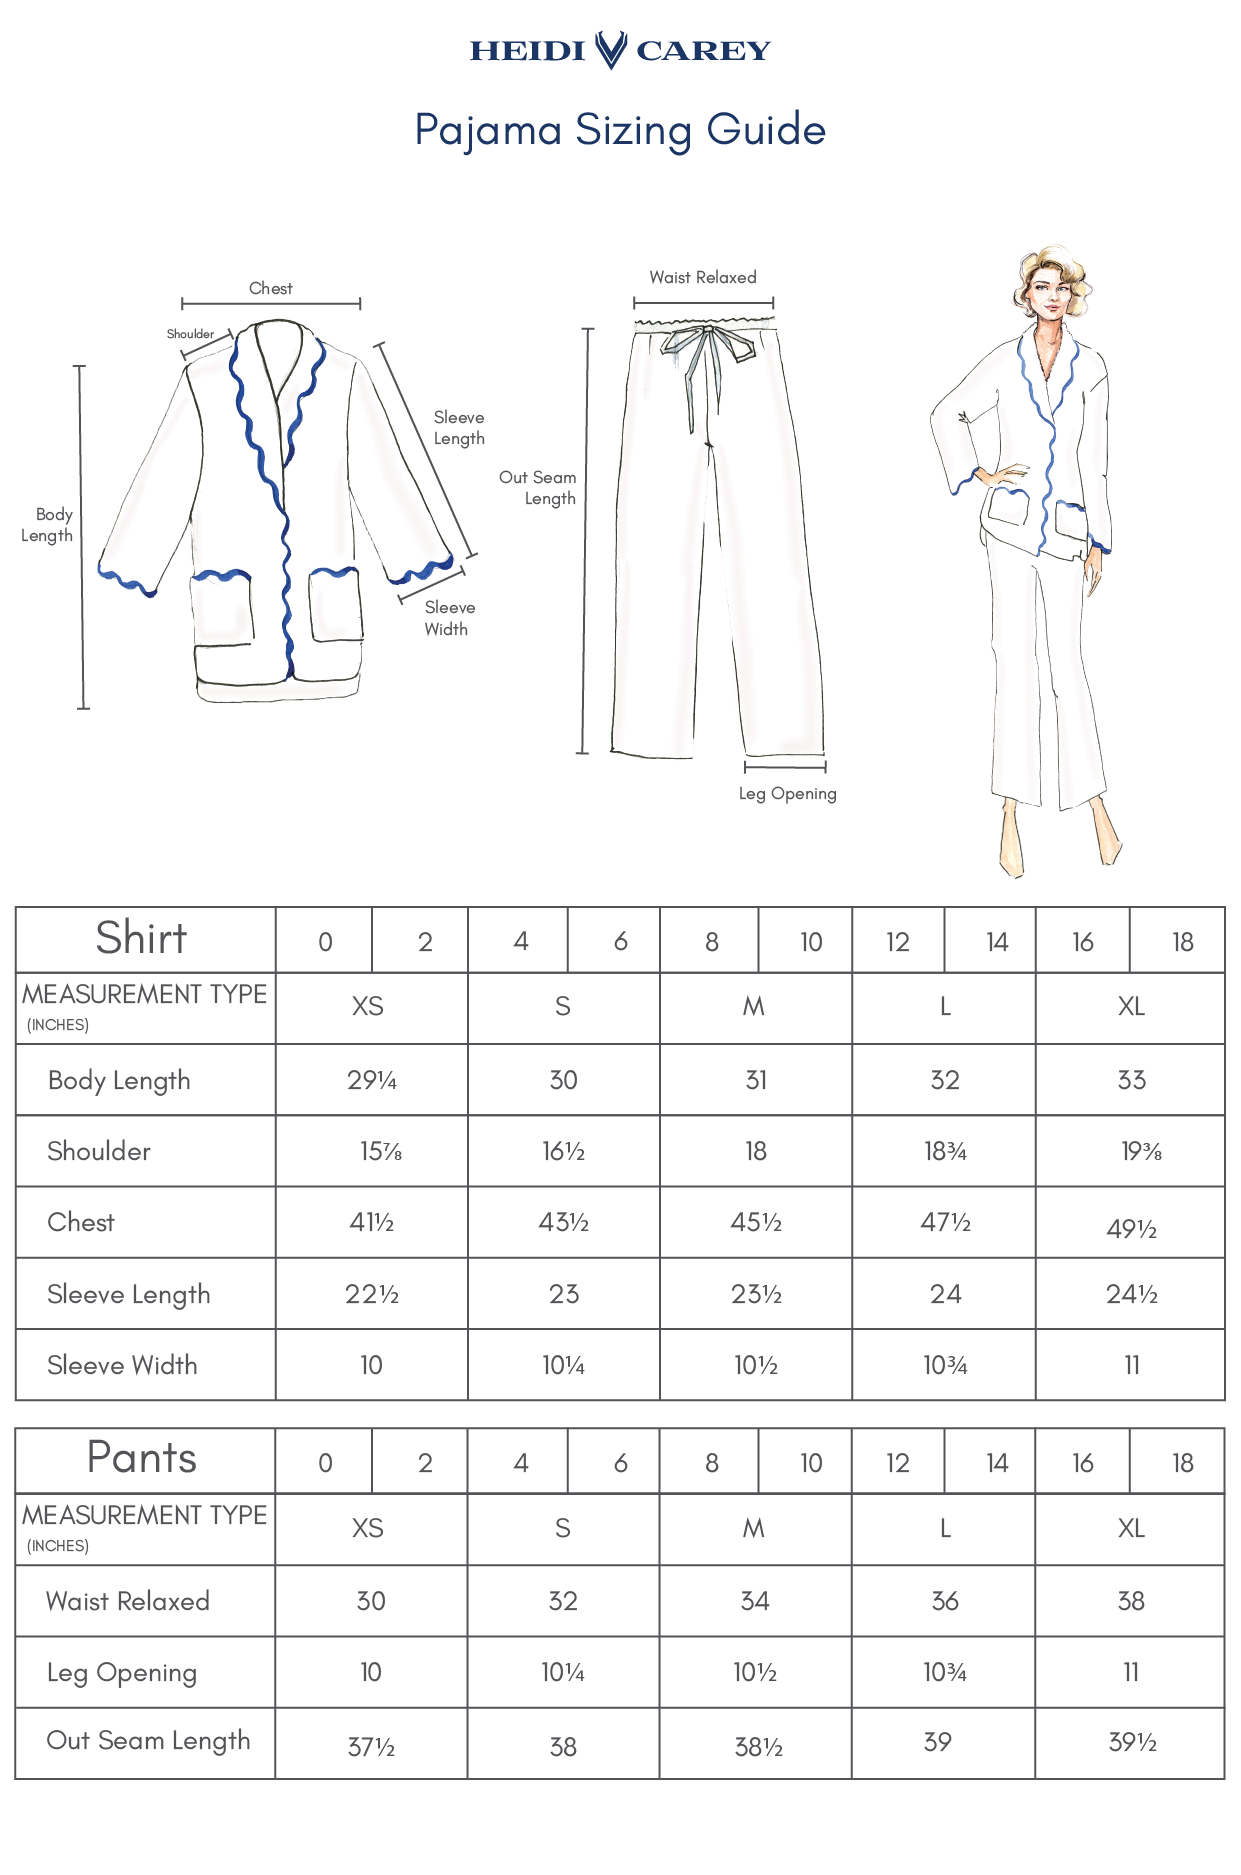 Pajama Sizing Guide